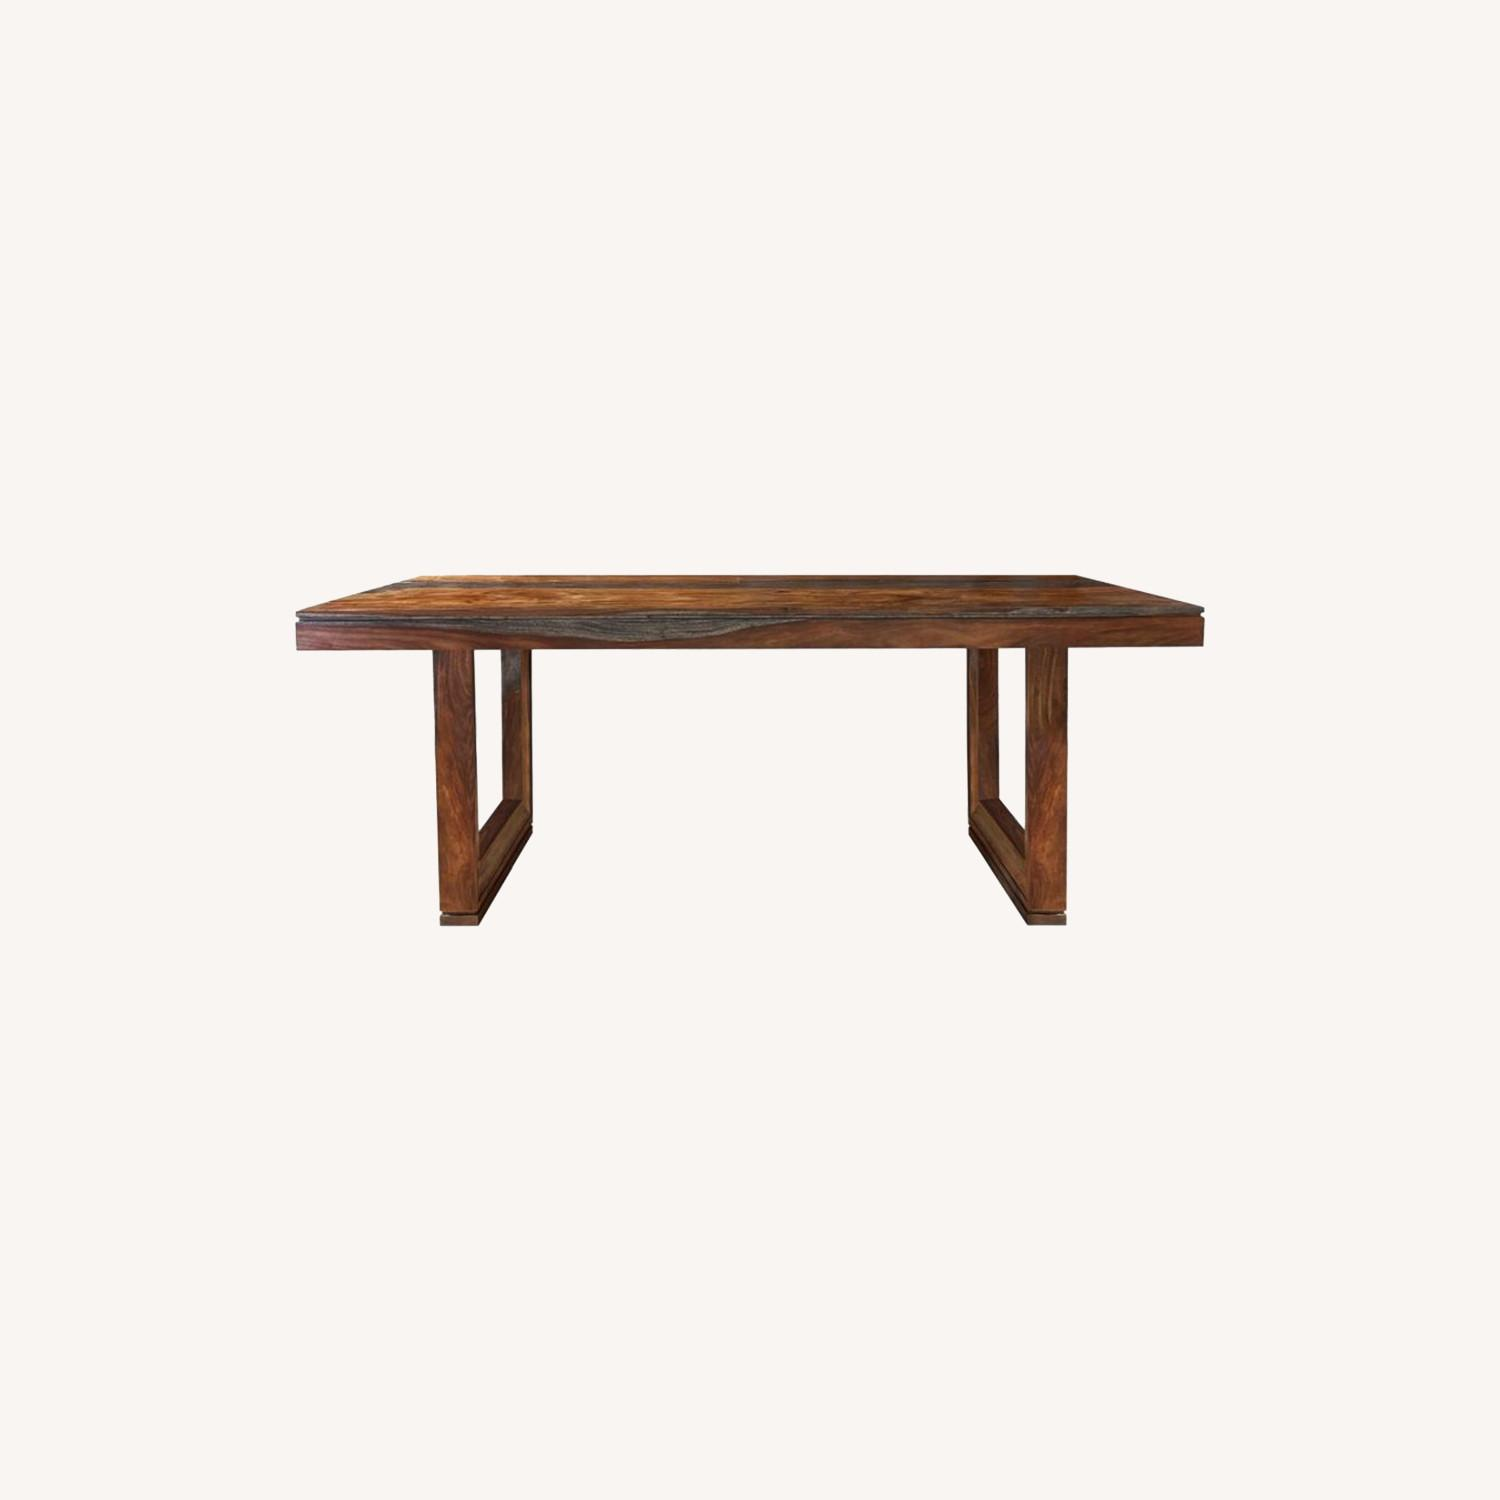 Rustic Dining Table In Grey Finish - image-3